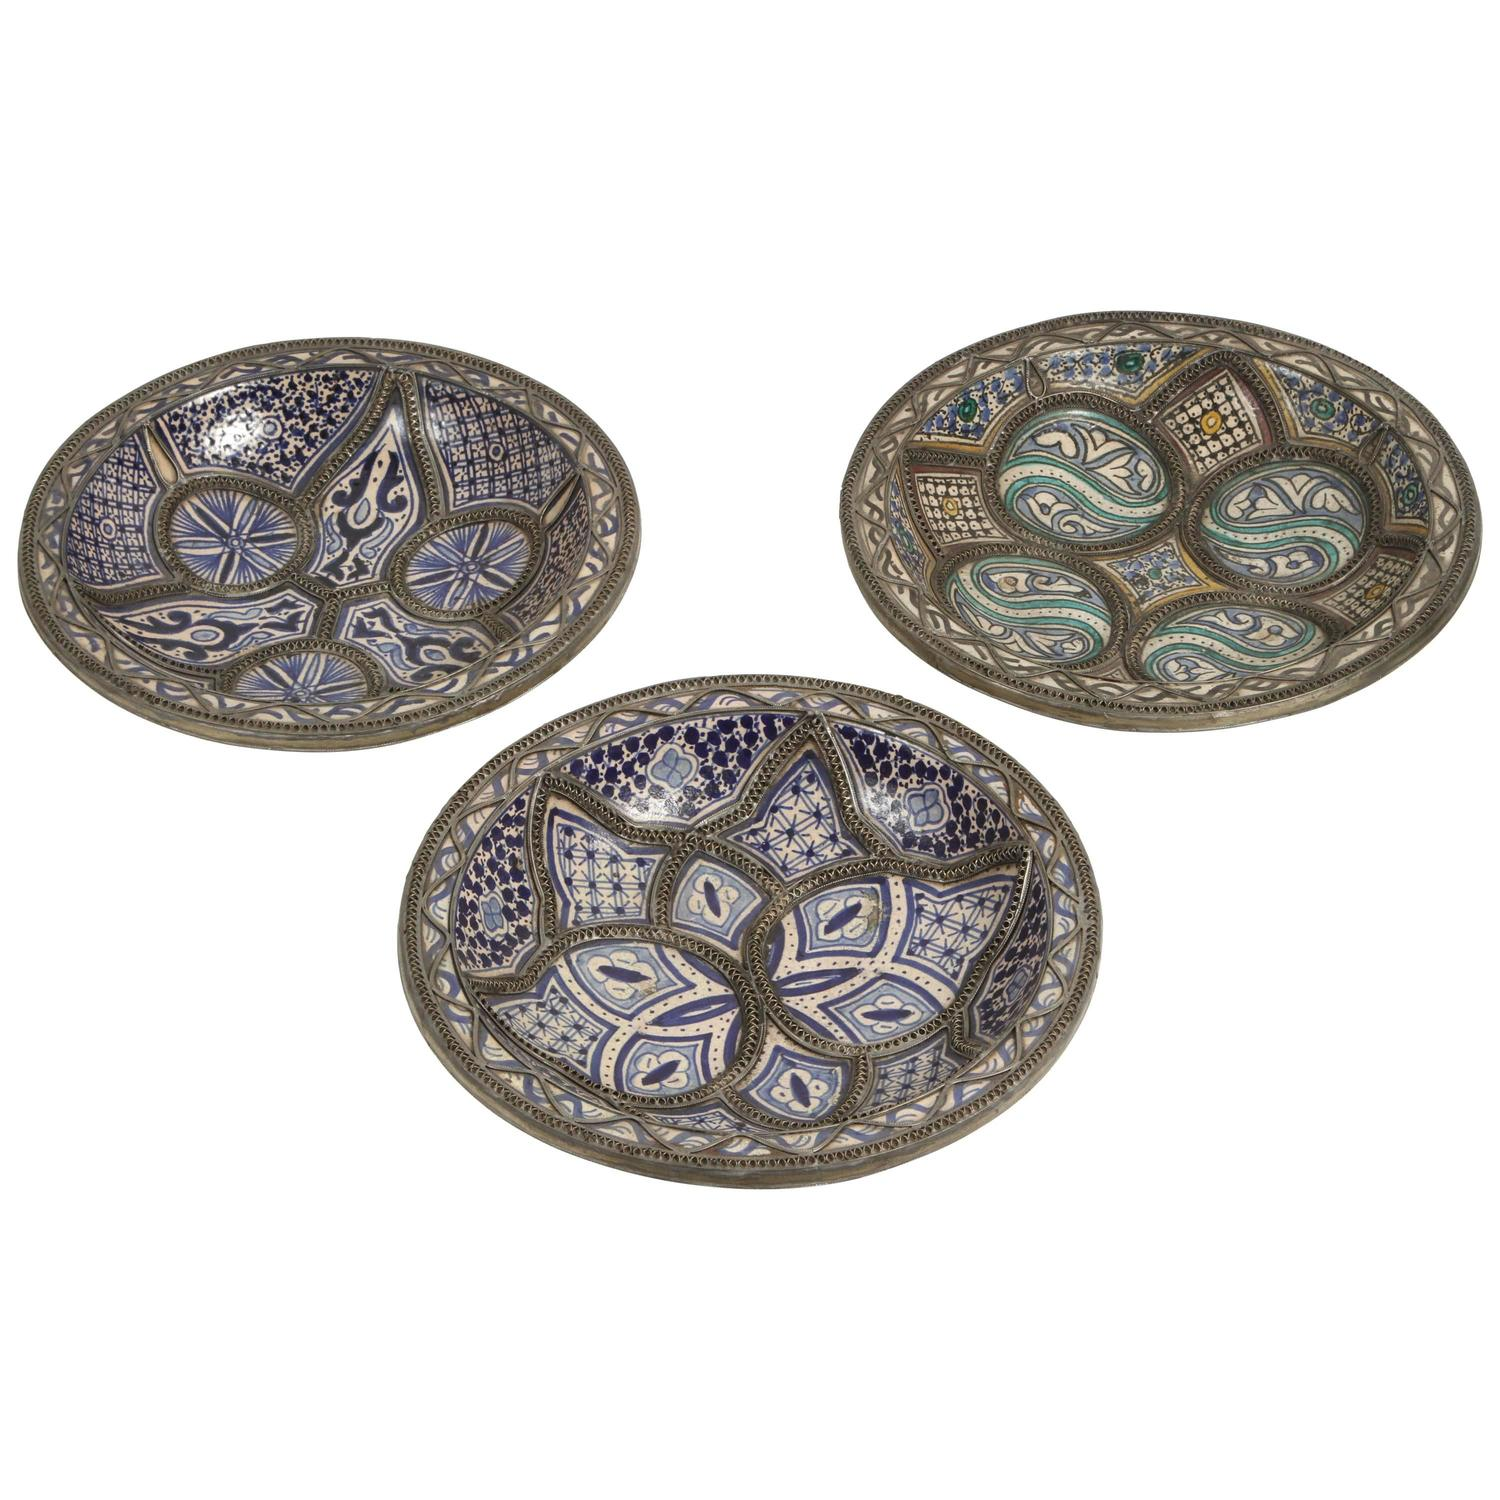 Set Of Three Ceramic Decorative Plates From Fez Morocco At. Large Dining Room Table Seats 12. Rooms For Rent San Antonio. Kids Bed Room Set. Cool Living Room Furniture. Fancy Dining Room. Decorative Nutcrackers. Small Decorative Lamps. Paint For Living Room